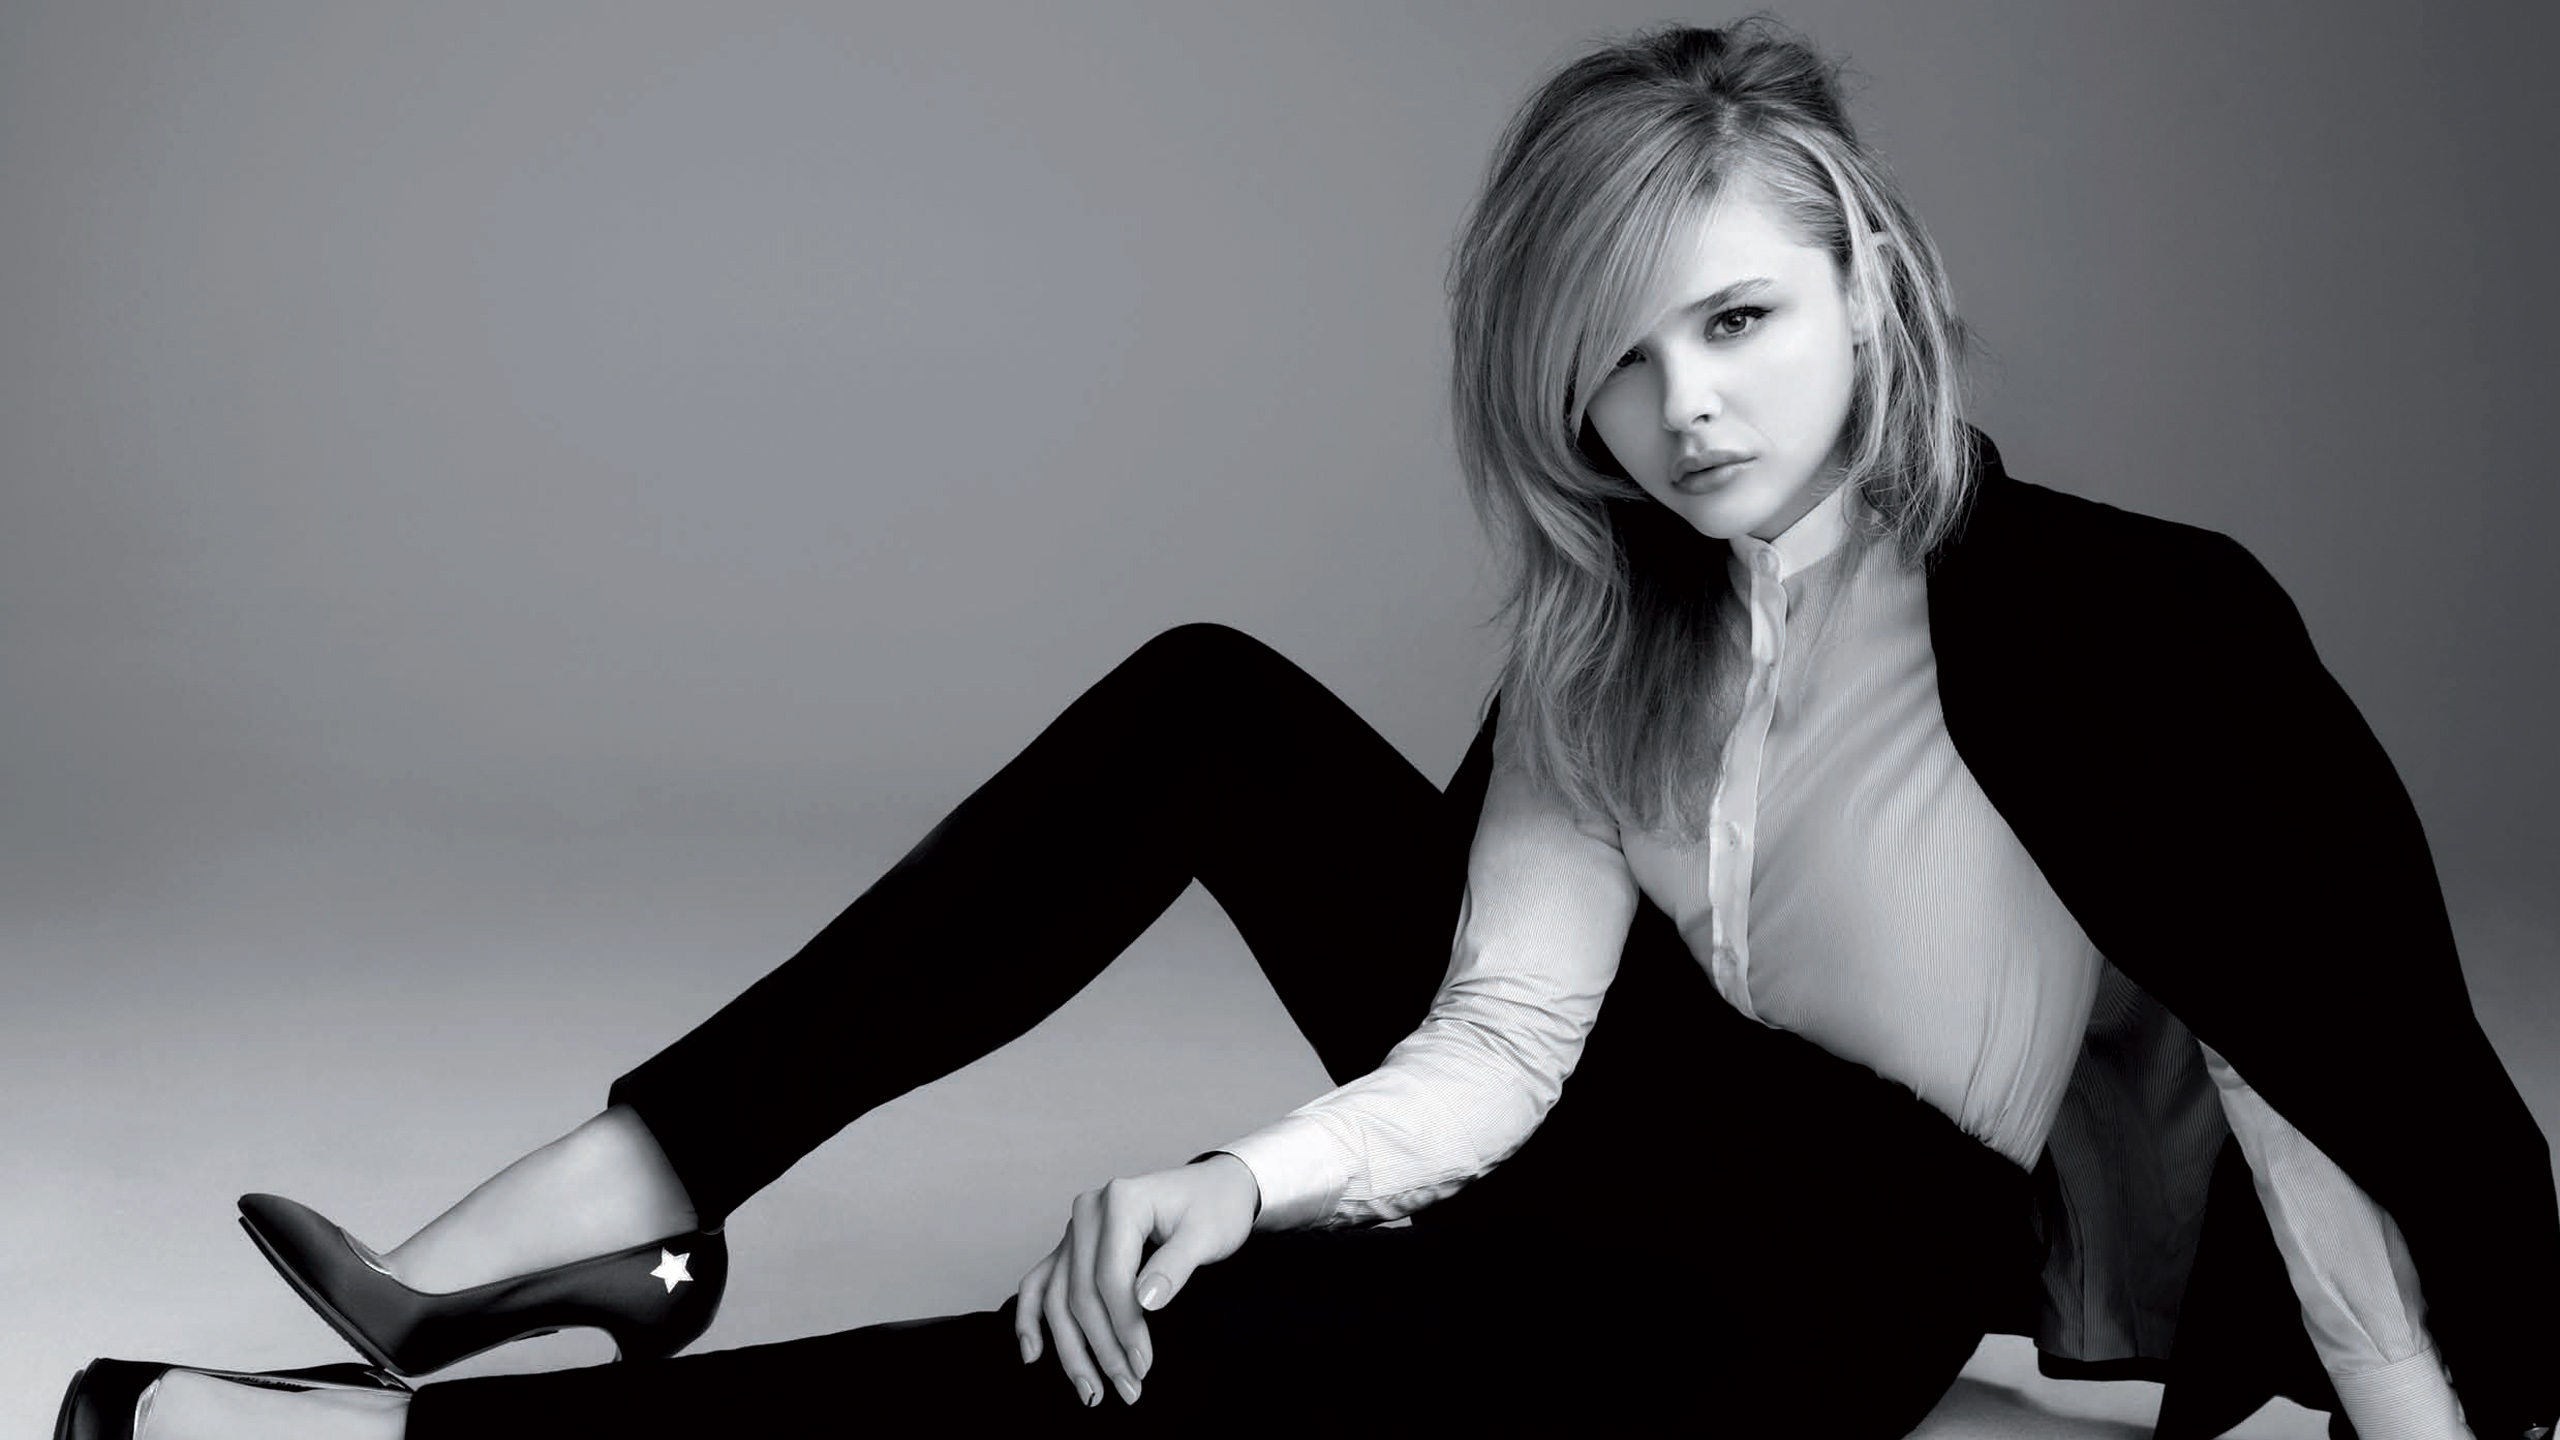 monochrome chloe grace moretz wide wallpaper 66661